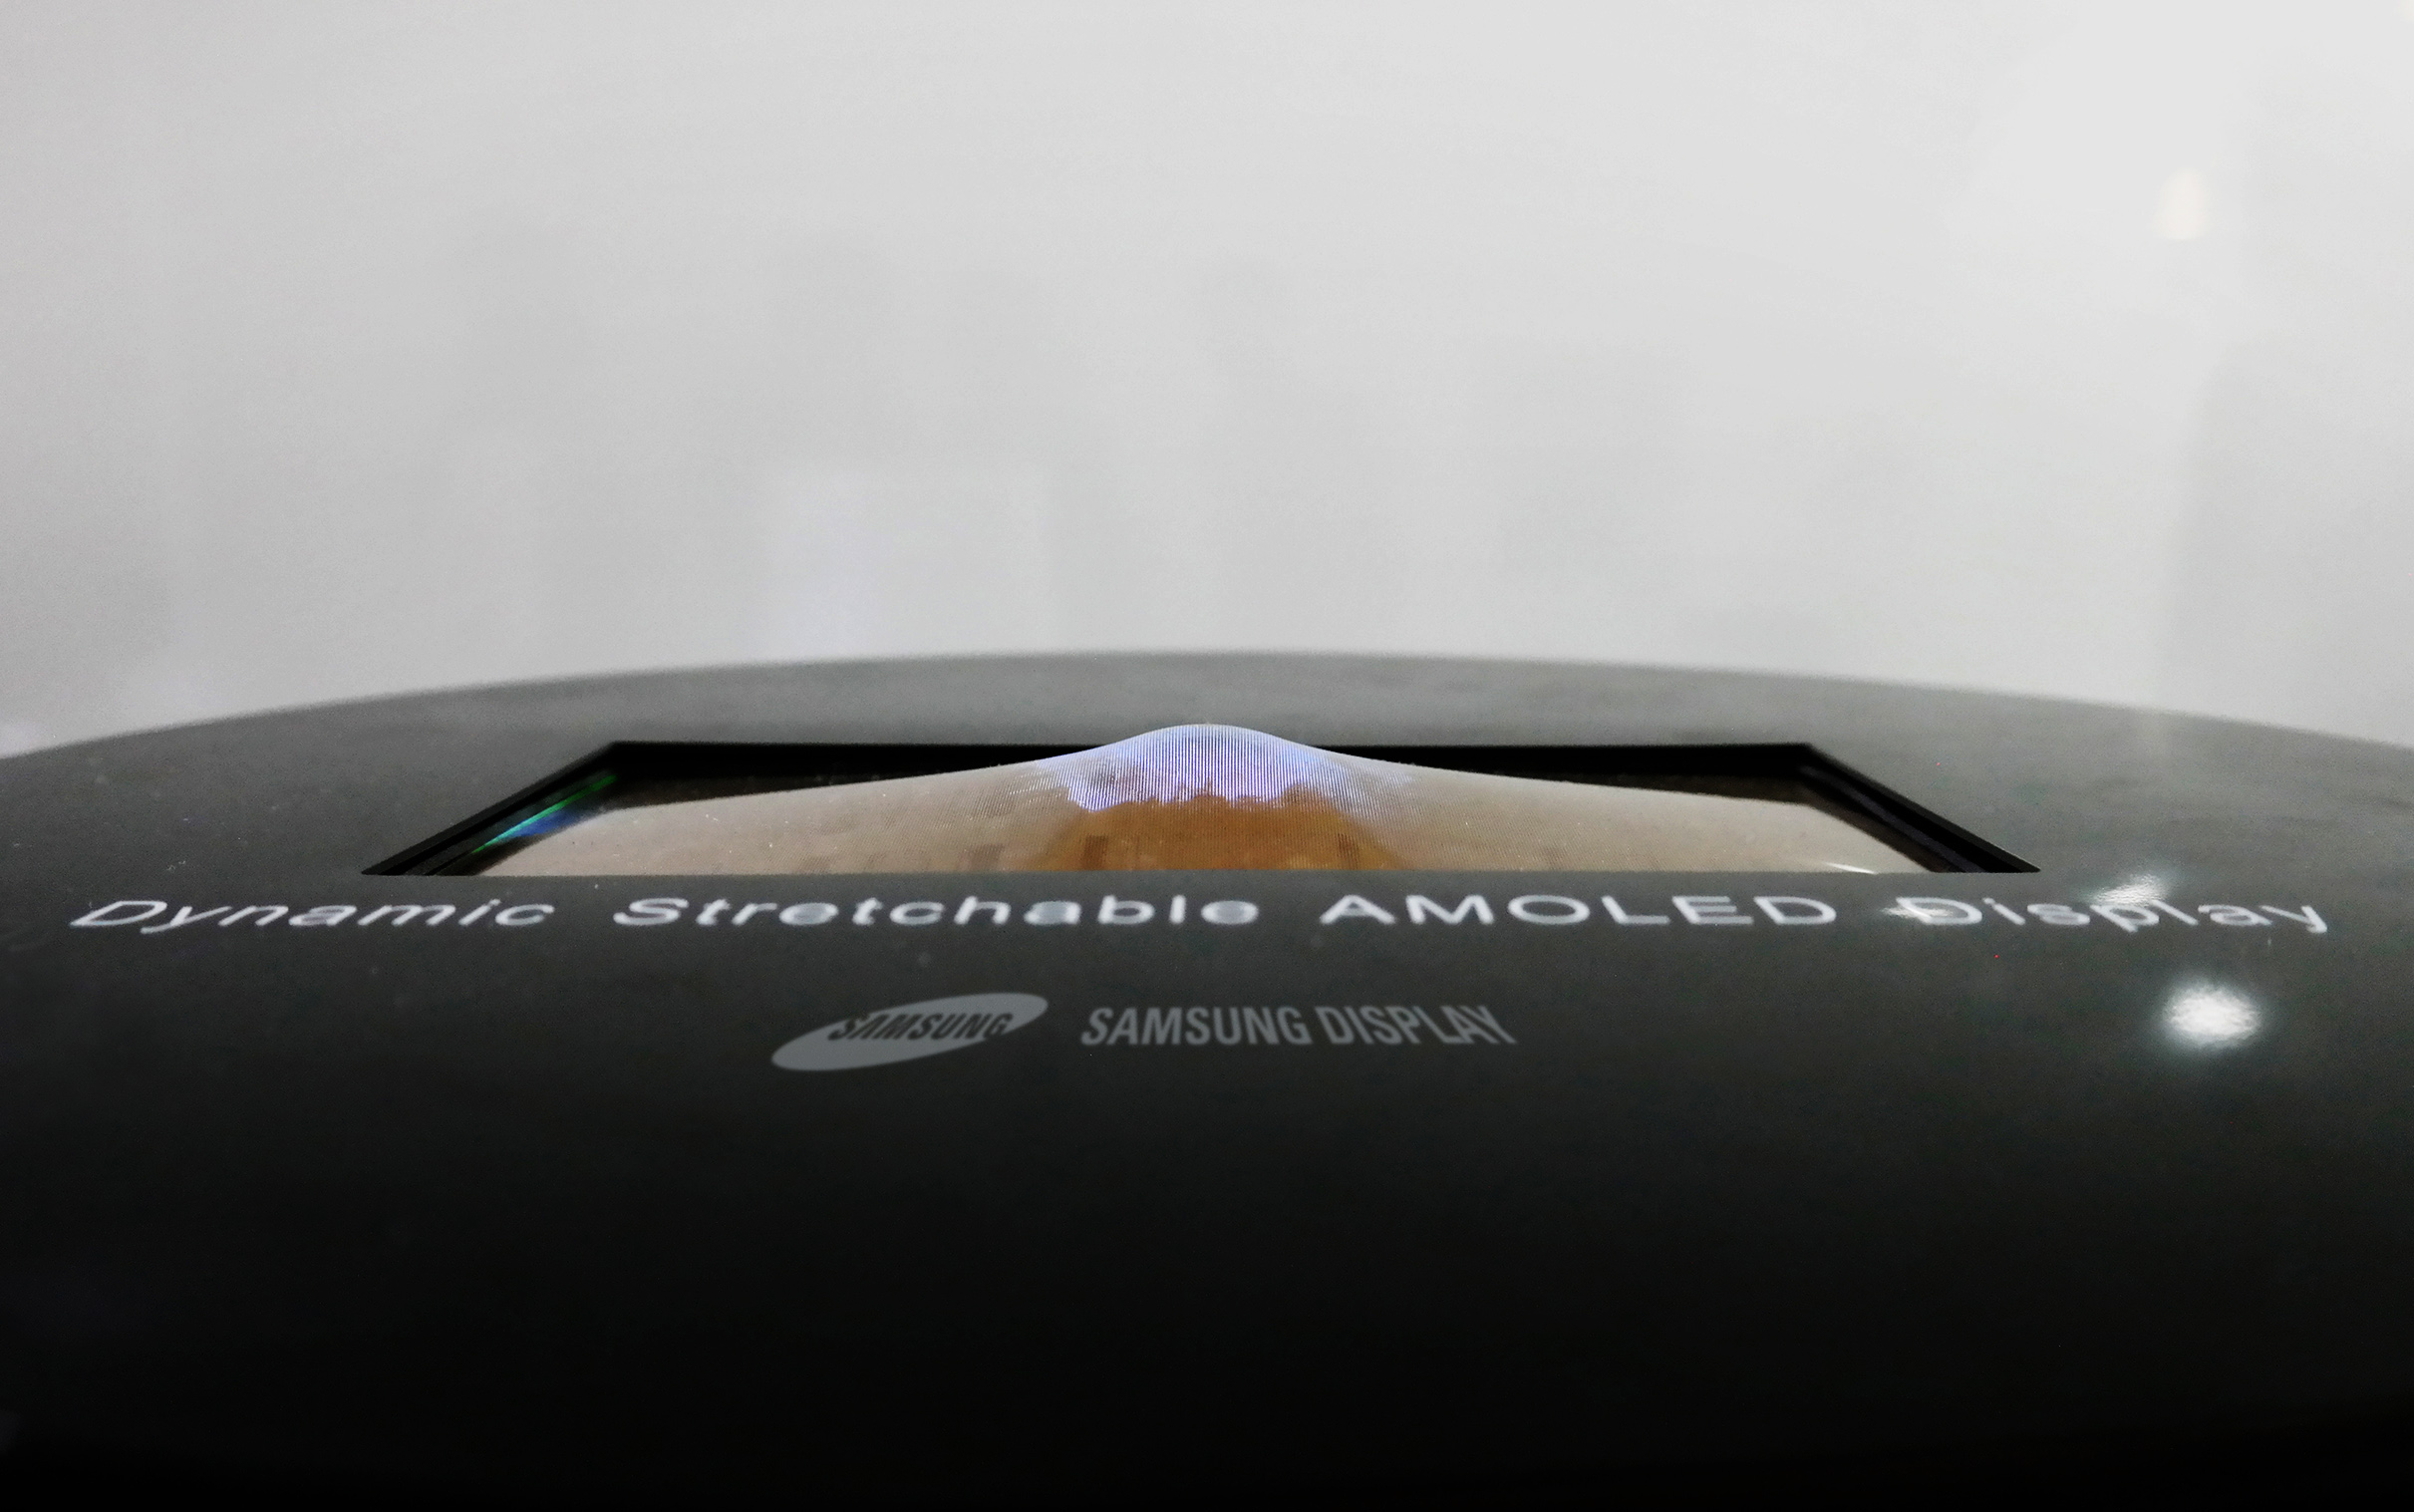 Samsung to unveil world's first stretchable display